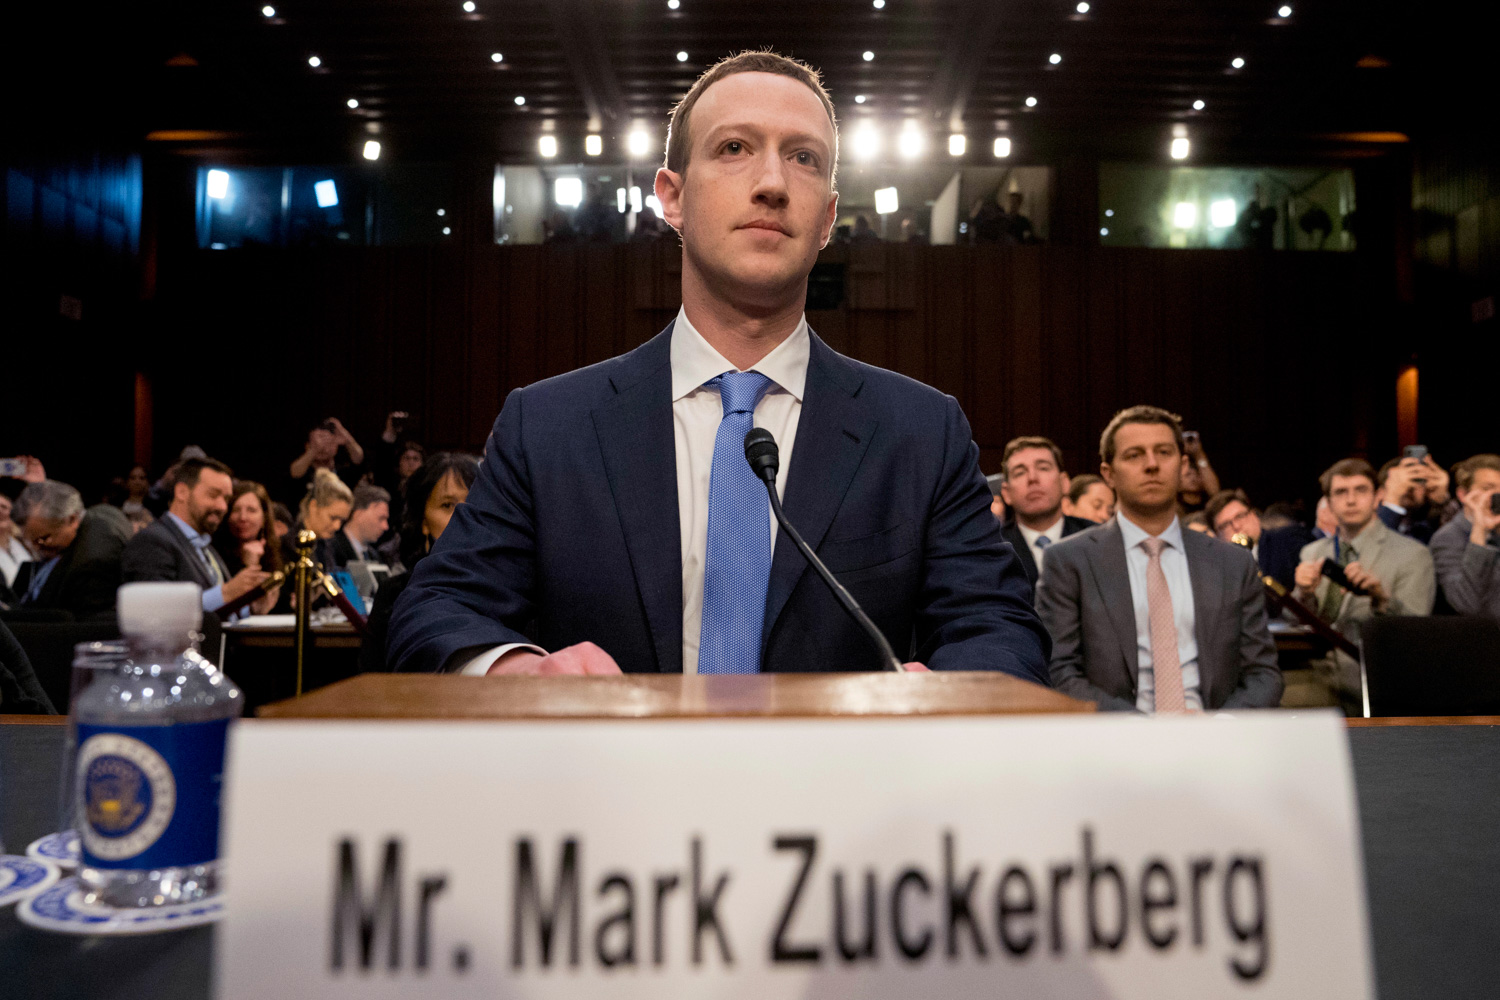 "<div class=""meta image-caption""><div class=""origin-logo origin-image none""><span>none</span></div><span class=""caption-text"">Facebook CEO Mark Zuckerberg arrives to testify before a joint hearing of the Commerce and Judiciary Committees on Capitol Hill in Washington. (Andrew Harnik/AP Photo)</span></div>"